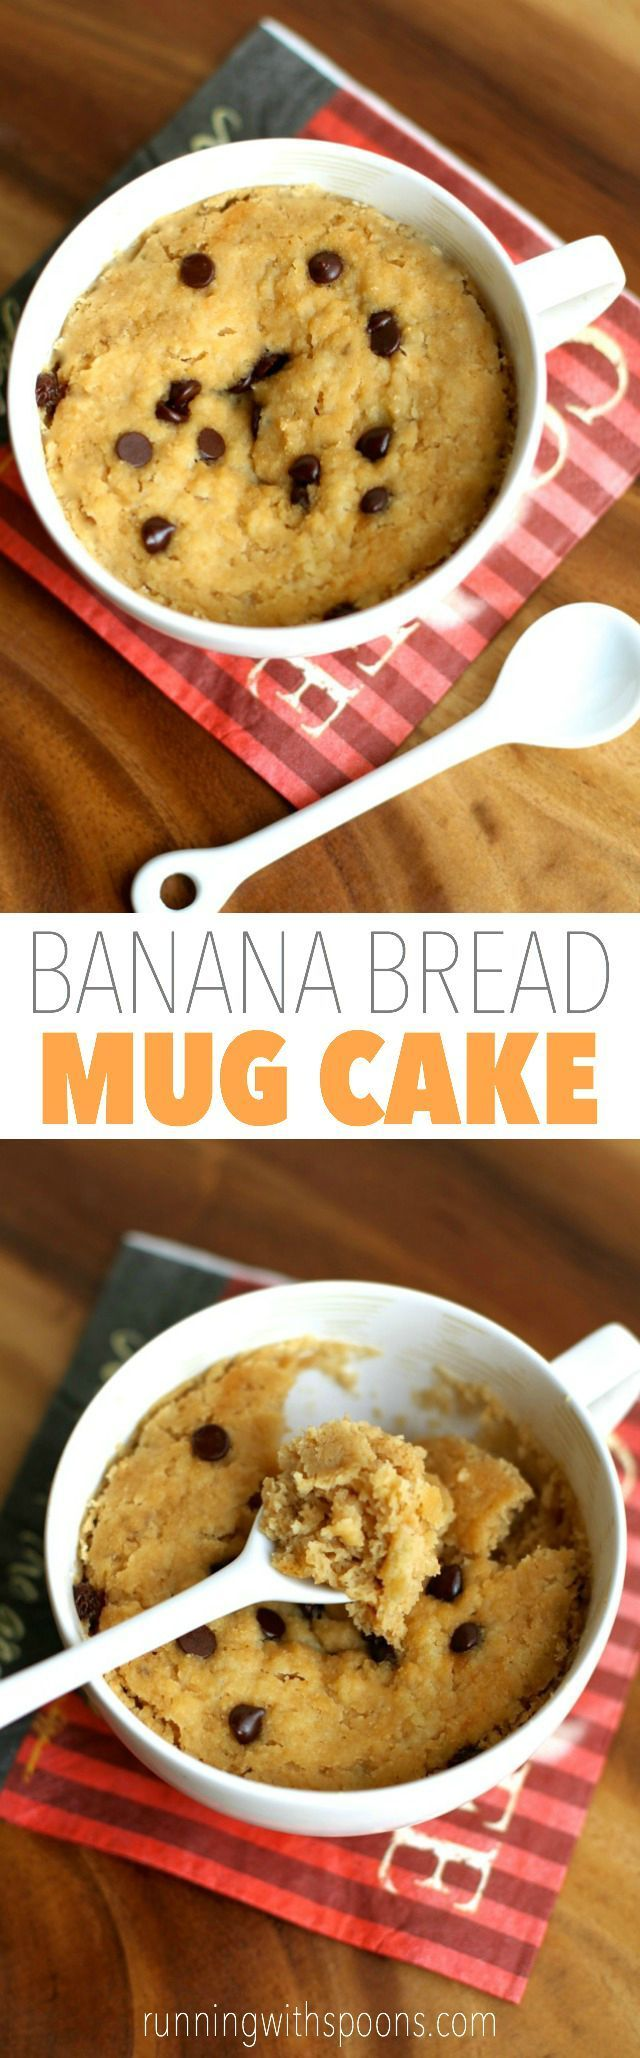 Banana Bread Mug Cake -- 5 minutes and 5 ingredients is all you need to make this healthy and delicious vegan mug cake! || runningwithspoons.com #glutenfree #vegan #recipe